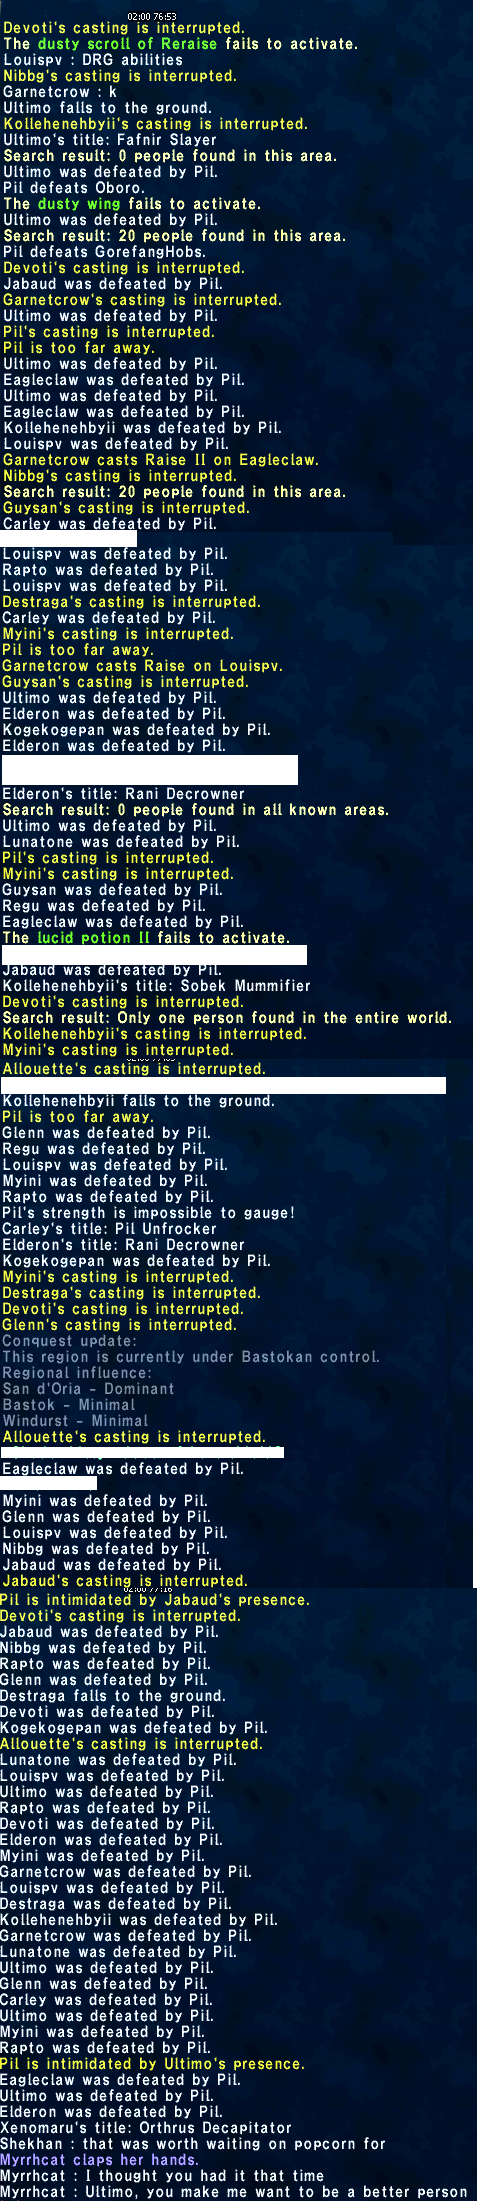 myrrh_quetz ffxi fail from ffxiah randomly this spotted thought screenshot pretty before fucking last xiii time talling posted sure random